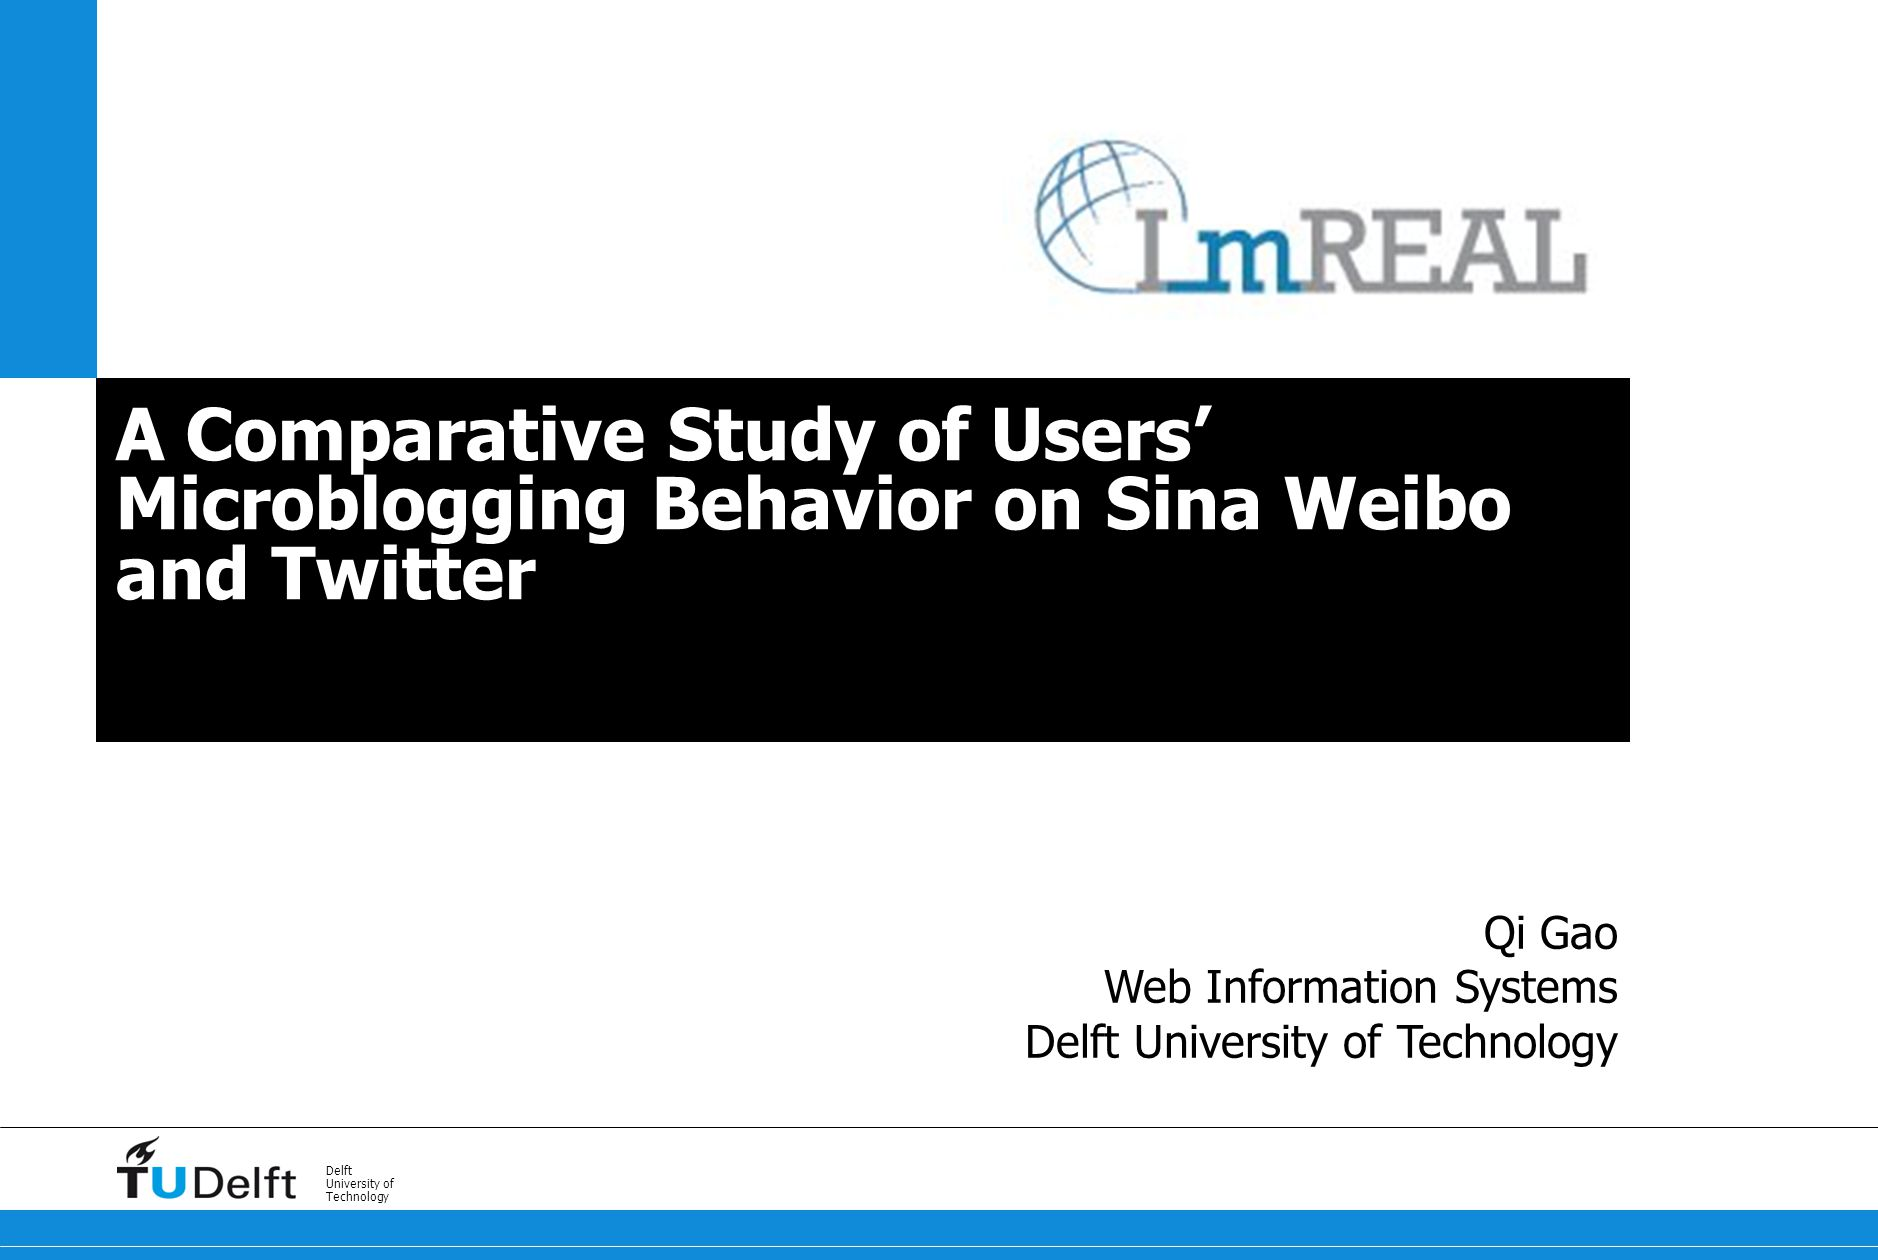 12 Microblogging Behavior on Sina Weibo and Twitter Analysis of users' microblogging behavior Datasets Microblog data collected from Sina Weibo and Twitter over a period of three months > 46 million micropost overall – 22m from Sina Weibo and 24m from Twitter a sample of 2616 Sina Weibo users and 1200 Twitter users Analyze and compare user behavior on Sina Weibo and Twitter on two levels (i) the entire user population and (ii) individual users from different angles (i) syntactic, (ii) semantic, (iii) sentiment and (iv) temporal analysis relate our findings to theories about cultural stereotypes (Hofstede's cultural dimensions)